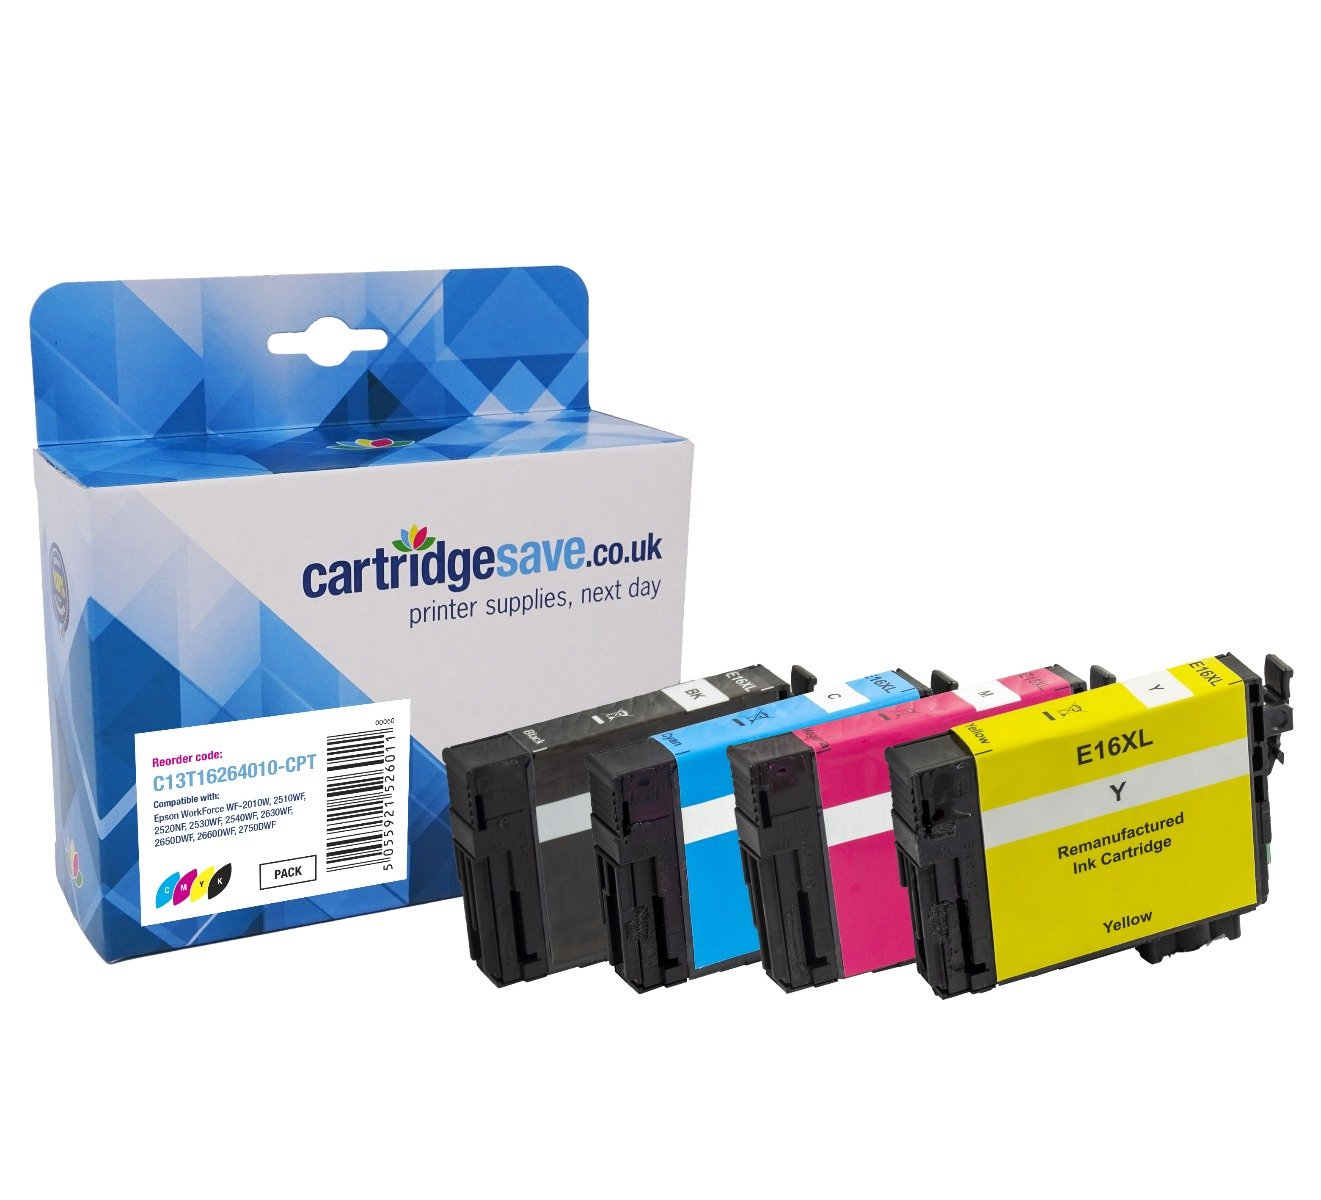 Compatible 4 Colour Epson 16 Ink Cartridge Multipack - (Replaces T1626 - T1621/T1622/T1623/T1624 Pen and Crossword Inkjet Printer Cartridges)